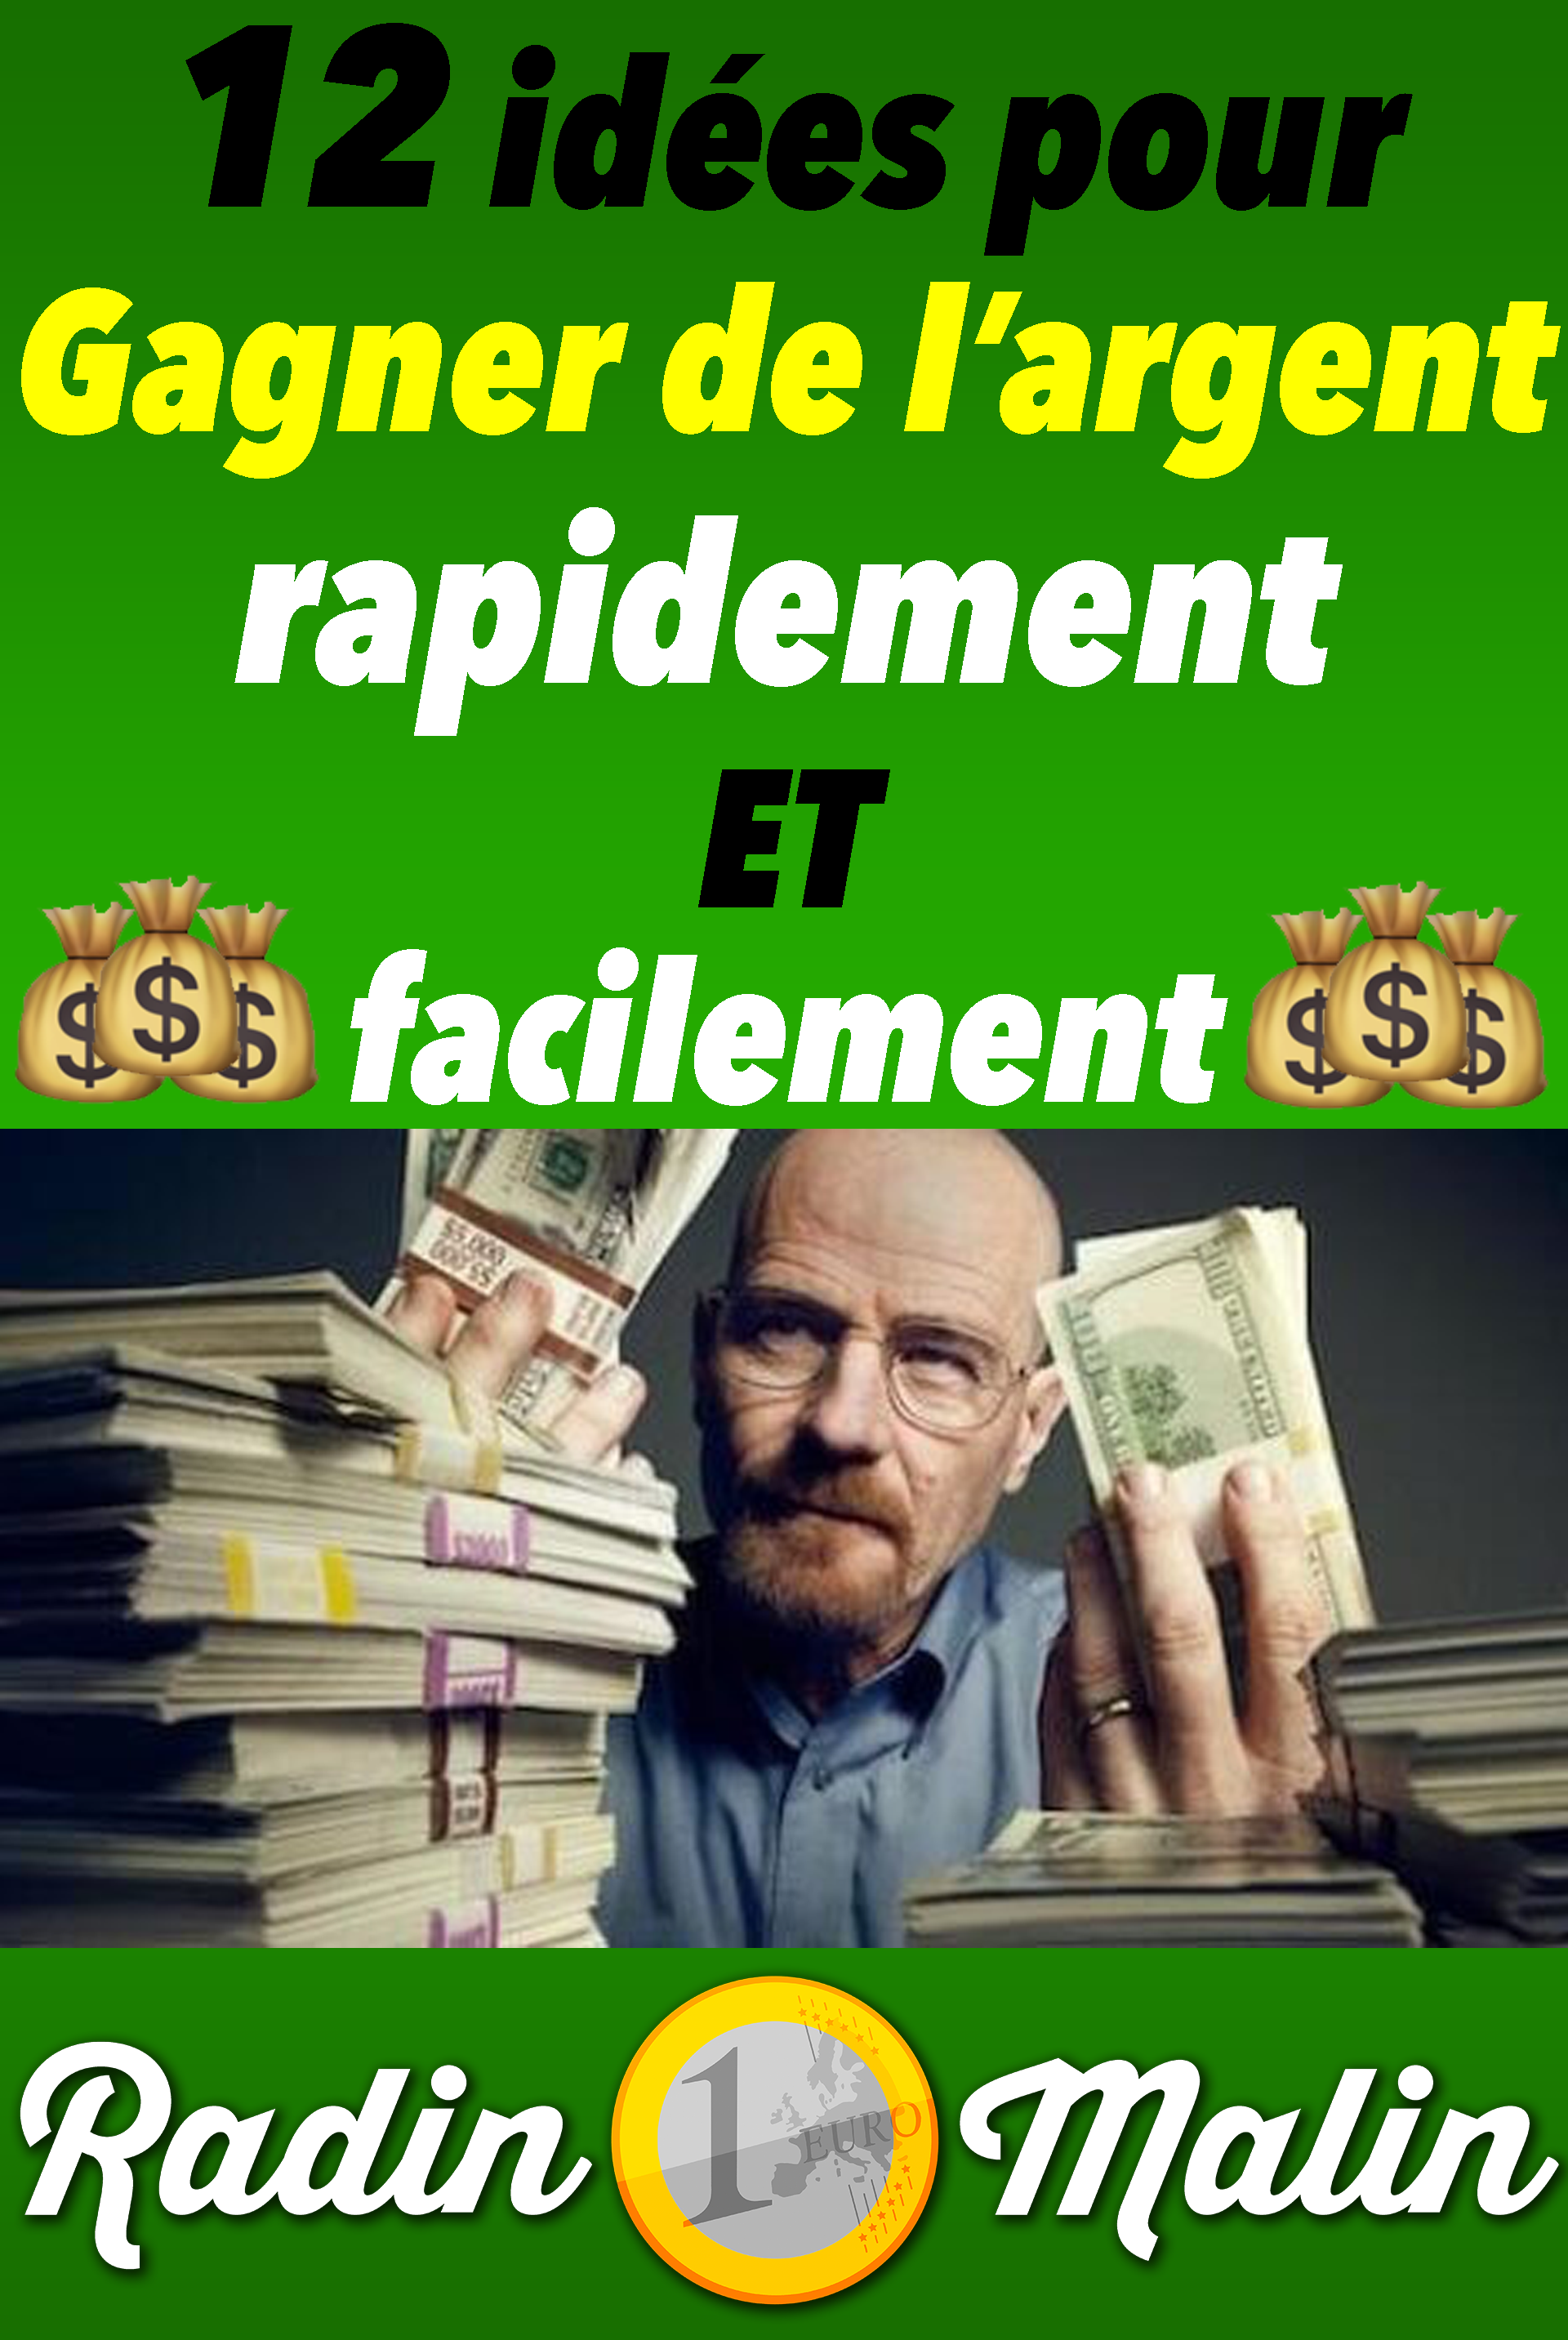 faire de largent idée